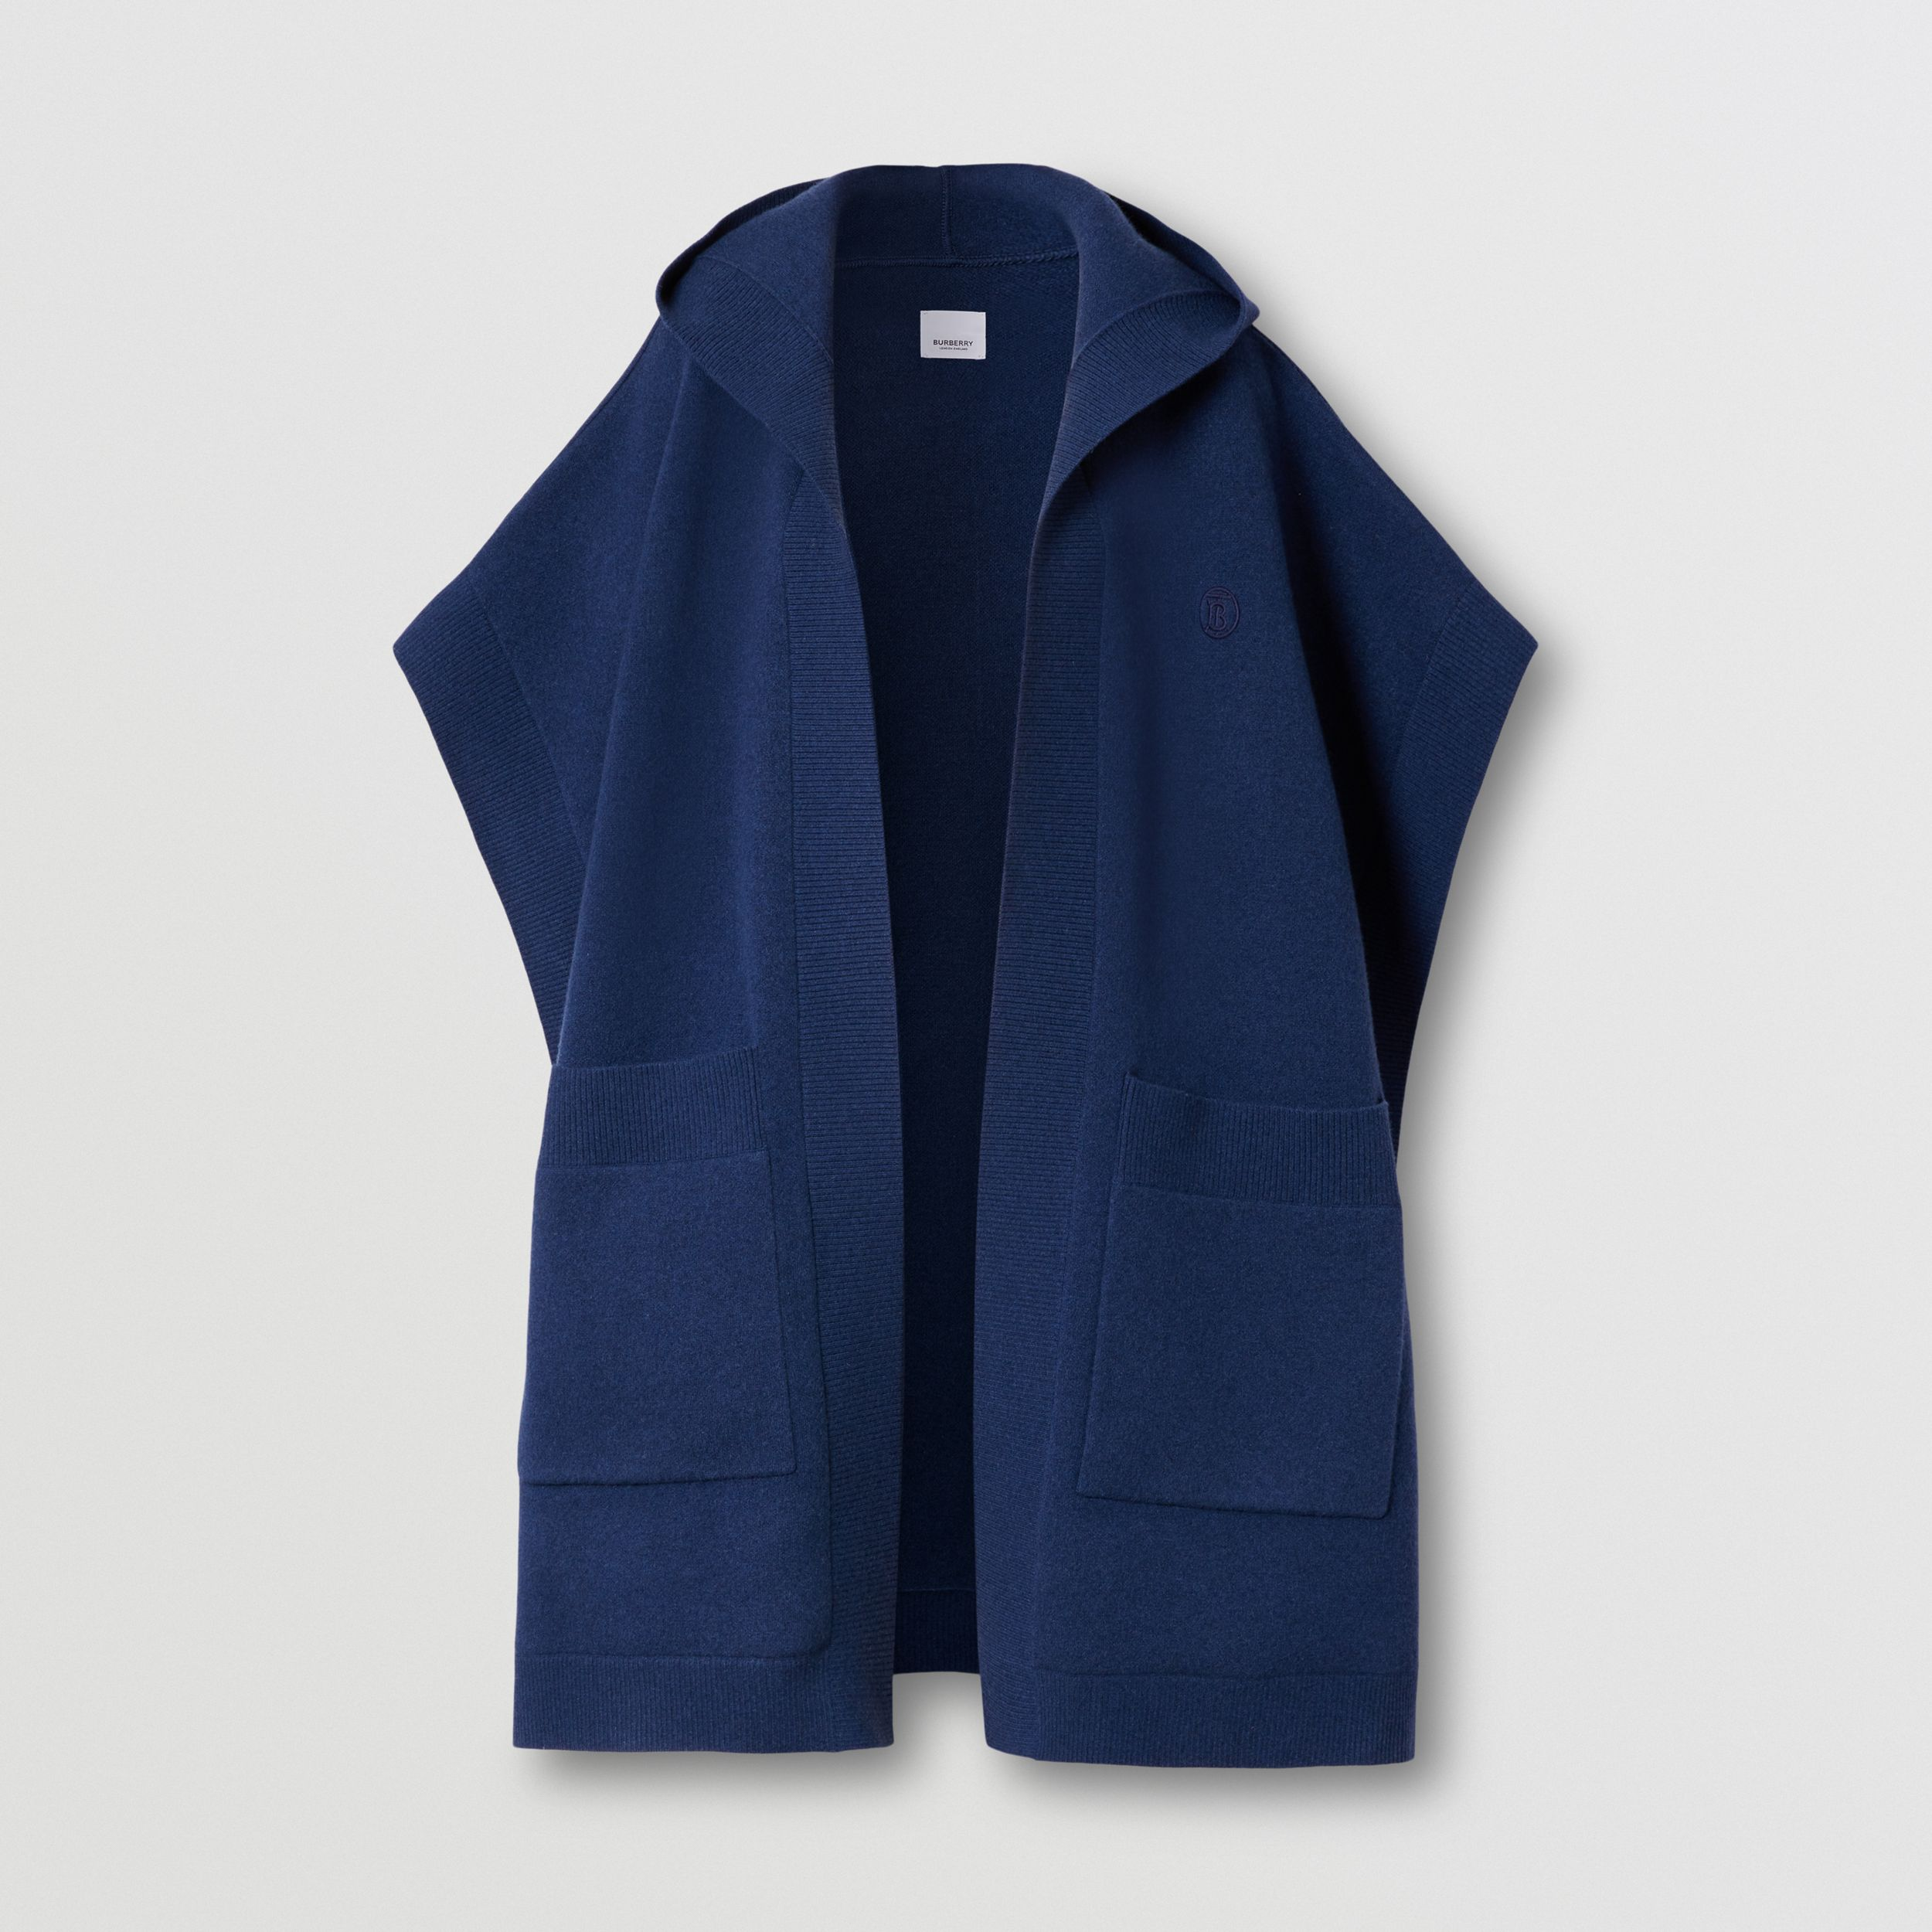 Monogram Motif Cashmere Blend Hooded Cape in Ink Blue - Women | Burberry - 4